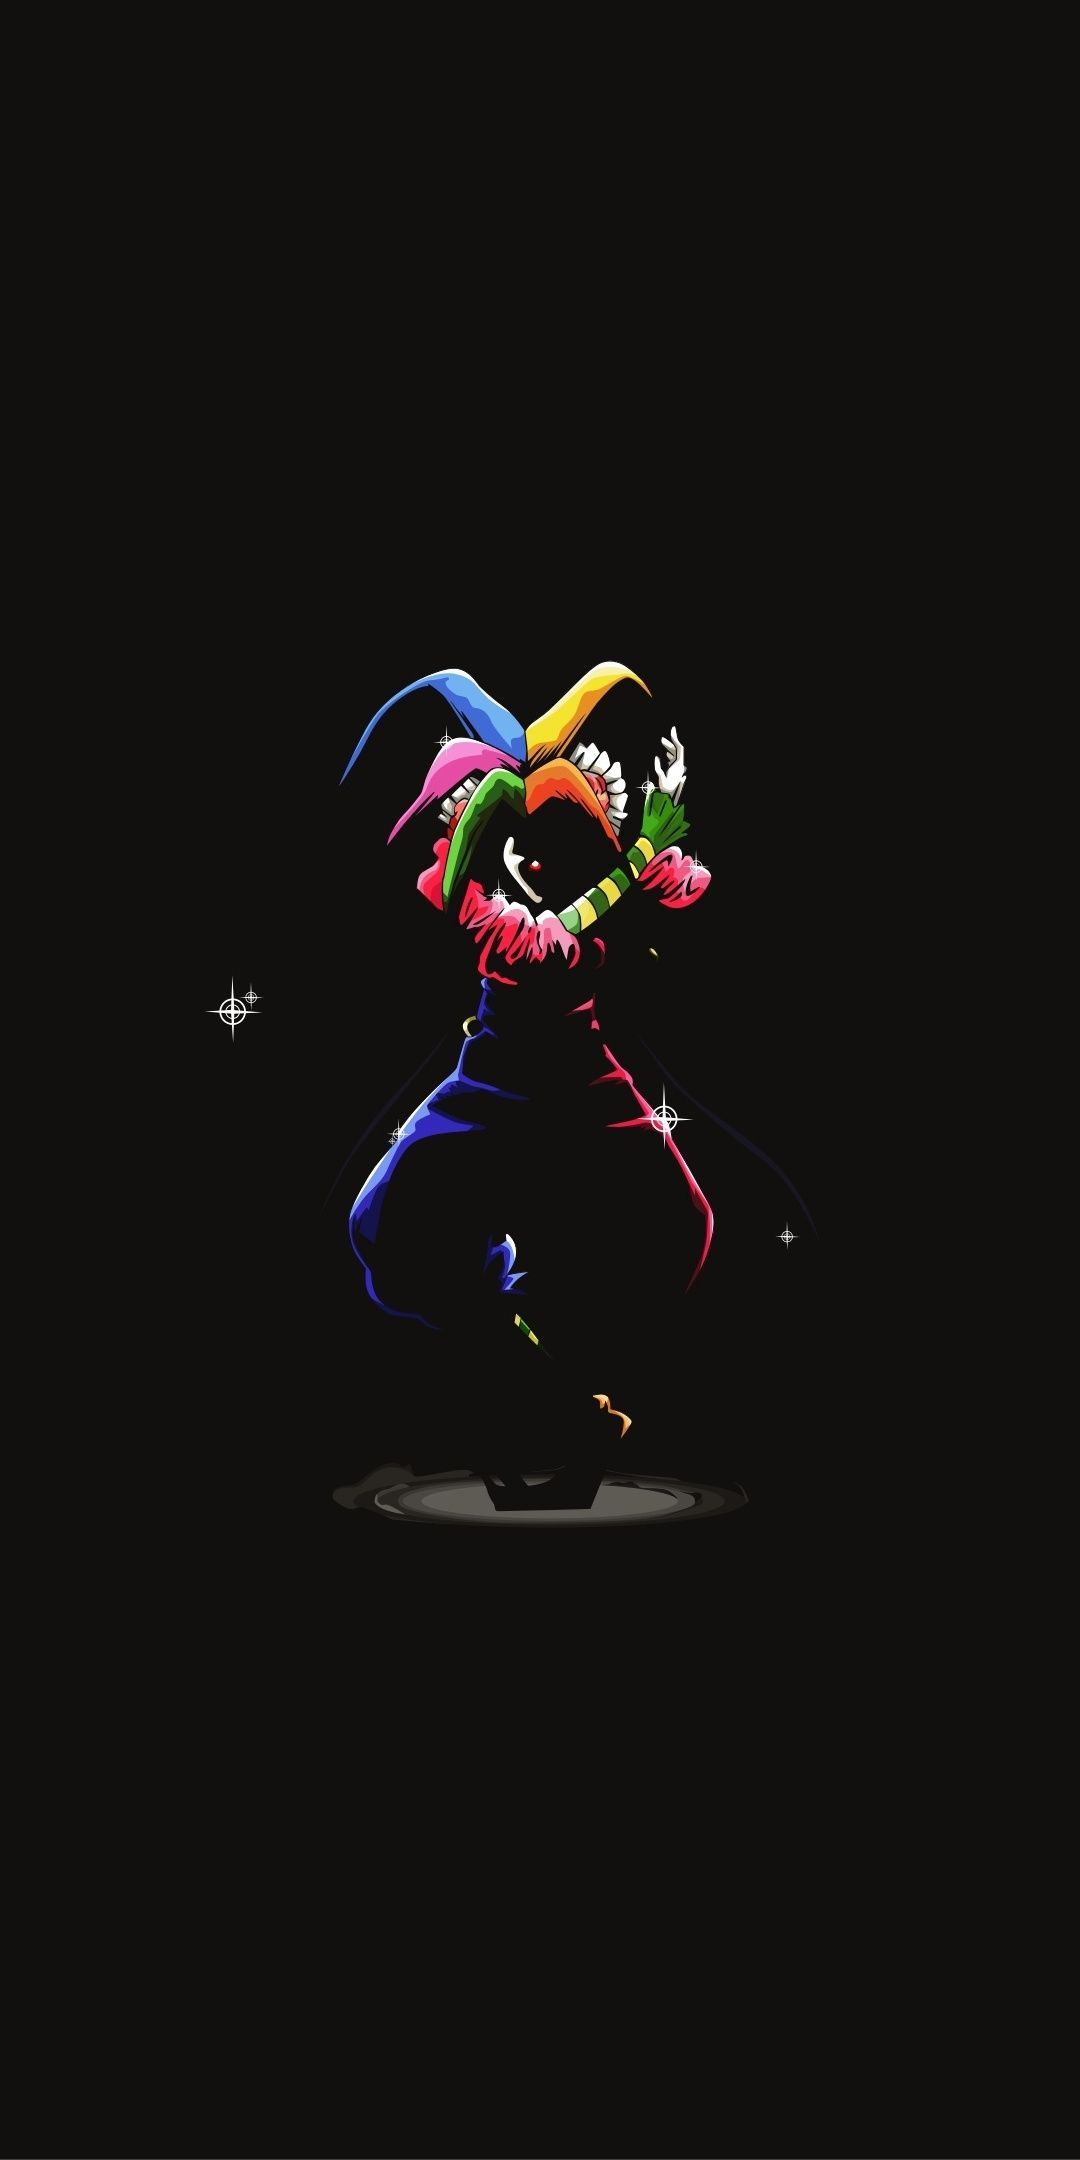 Joker Clown Artwork Karakuri Circus Minimal 1080x2160